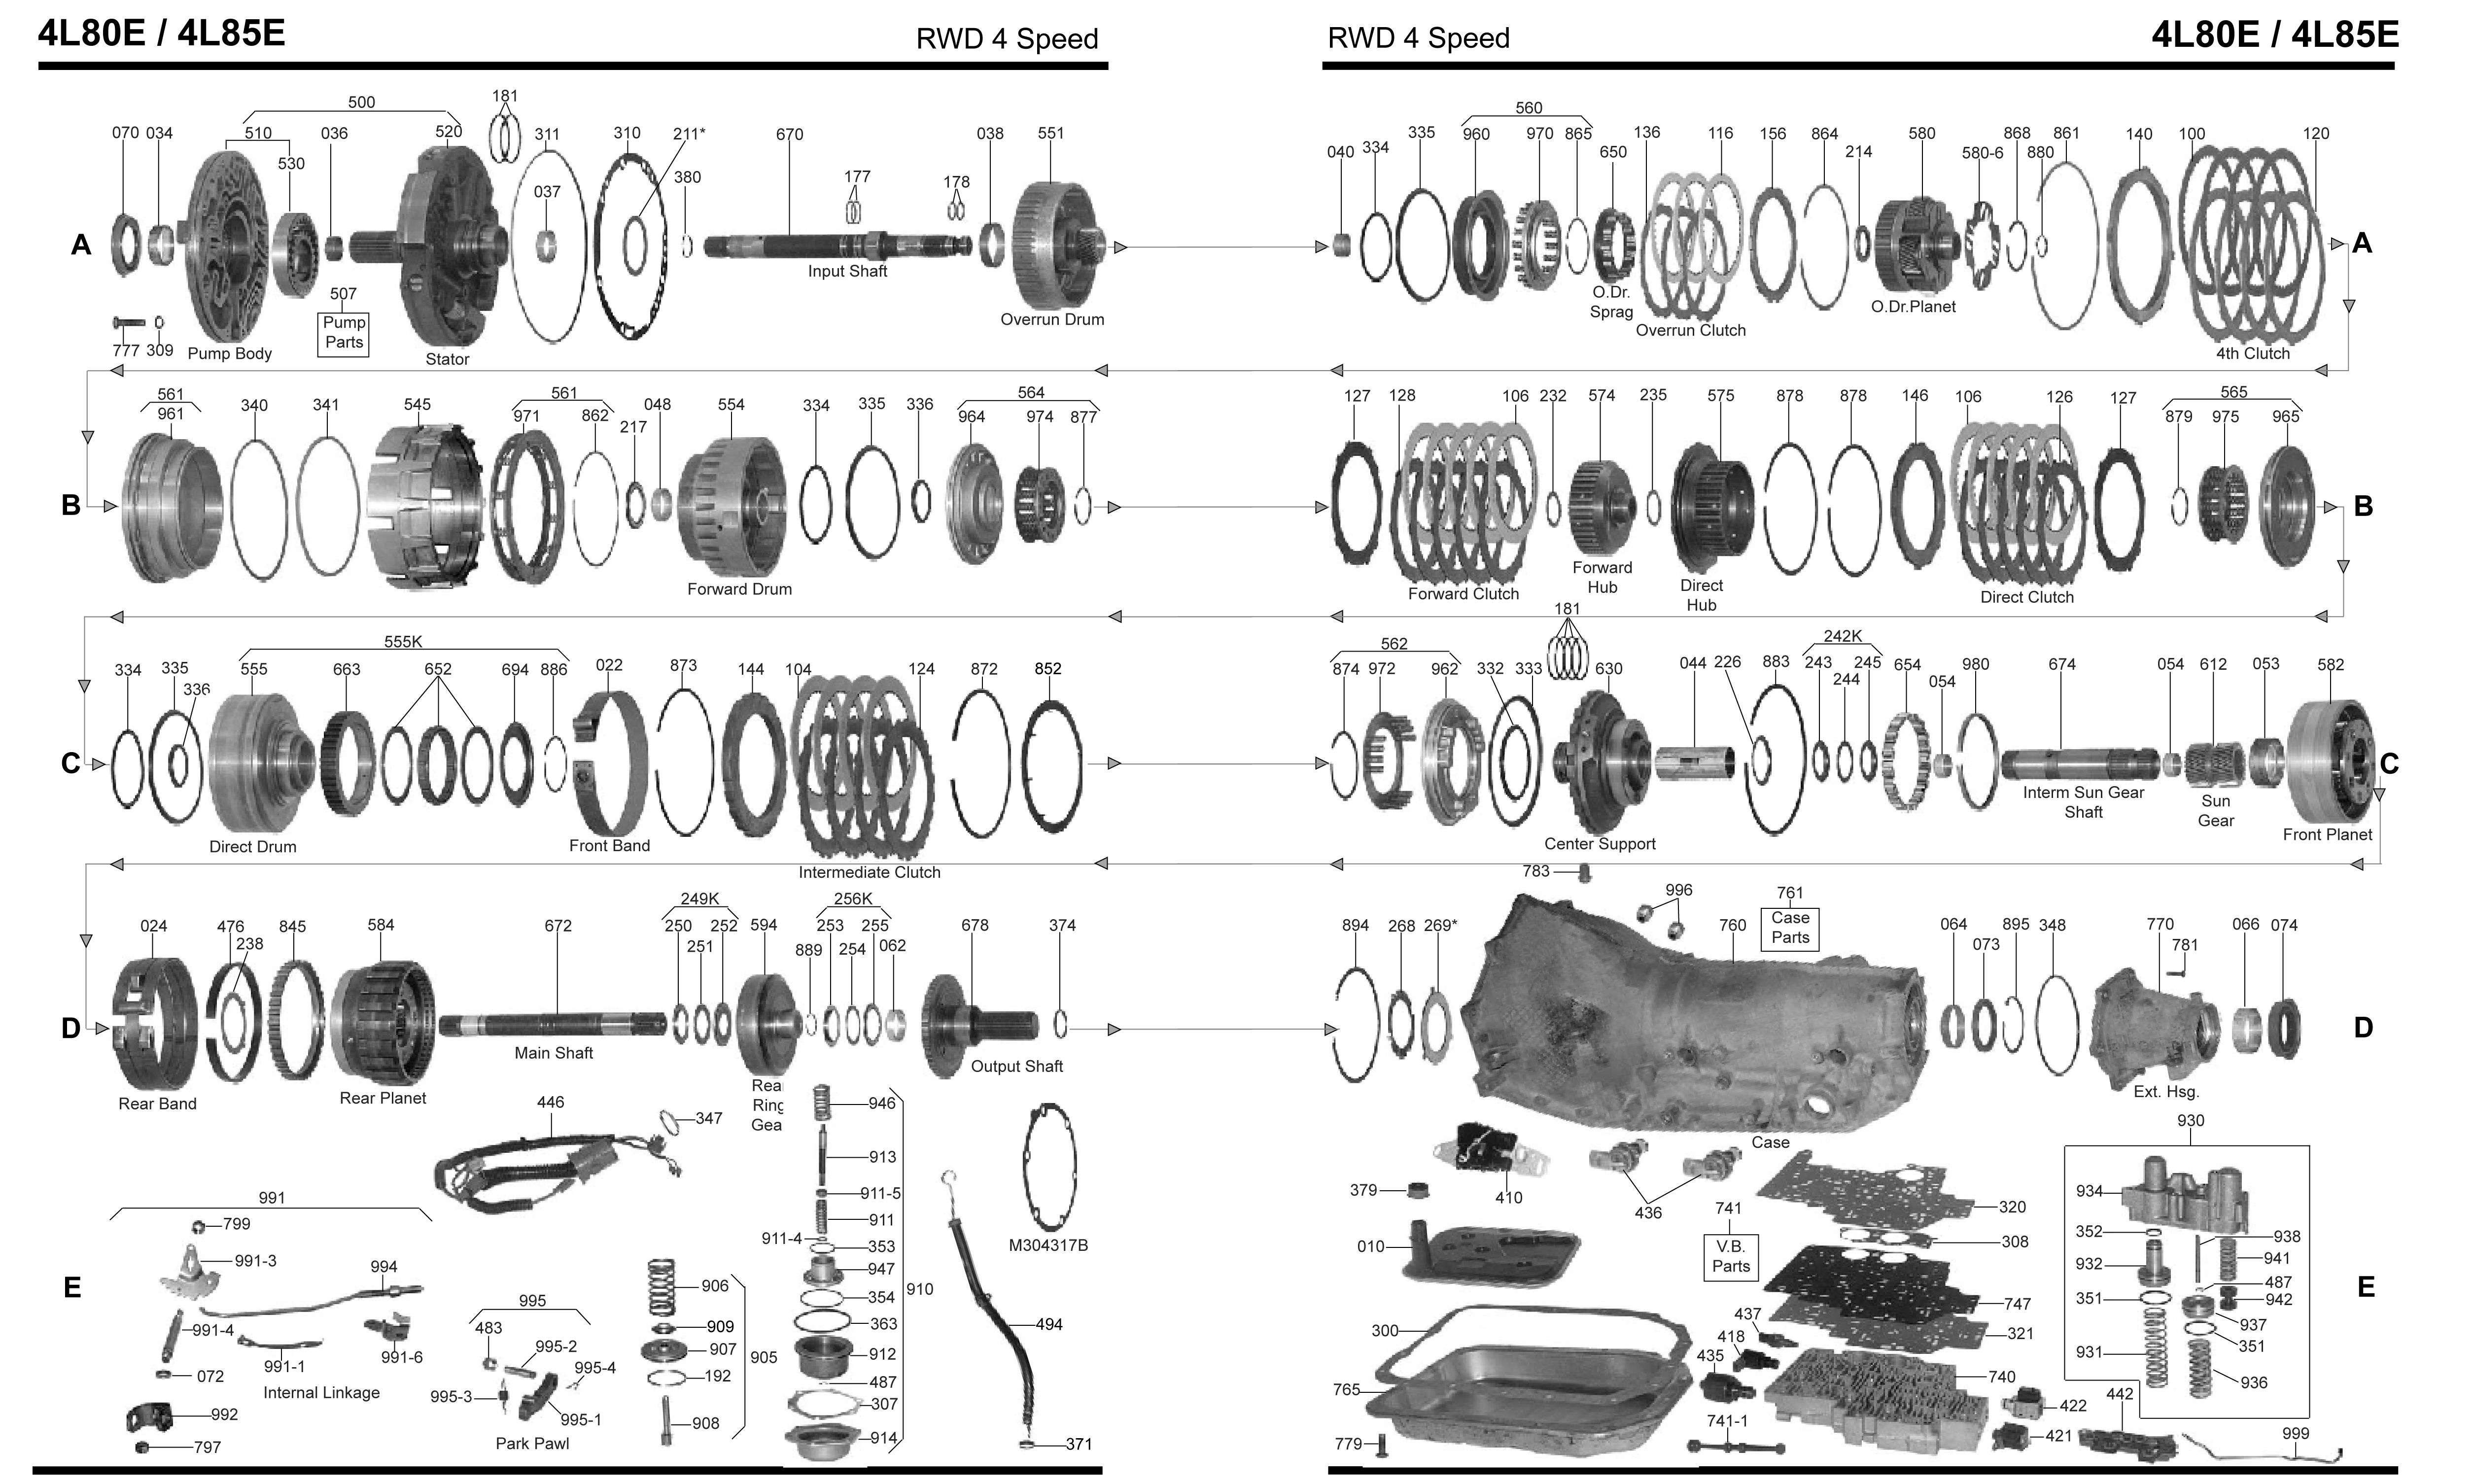 automatic transmission line drawings auto trans chartparts diagram for 4l80 e transmission yahoo search results yahoo [ 5021 x 3011 Pixel ]